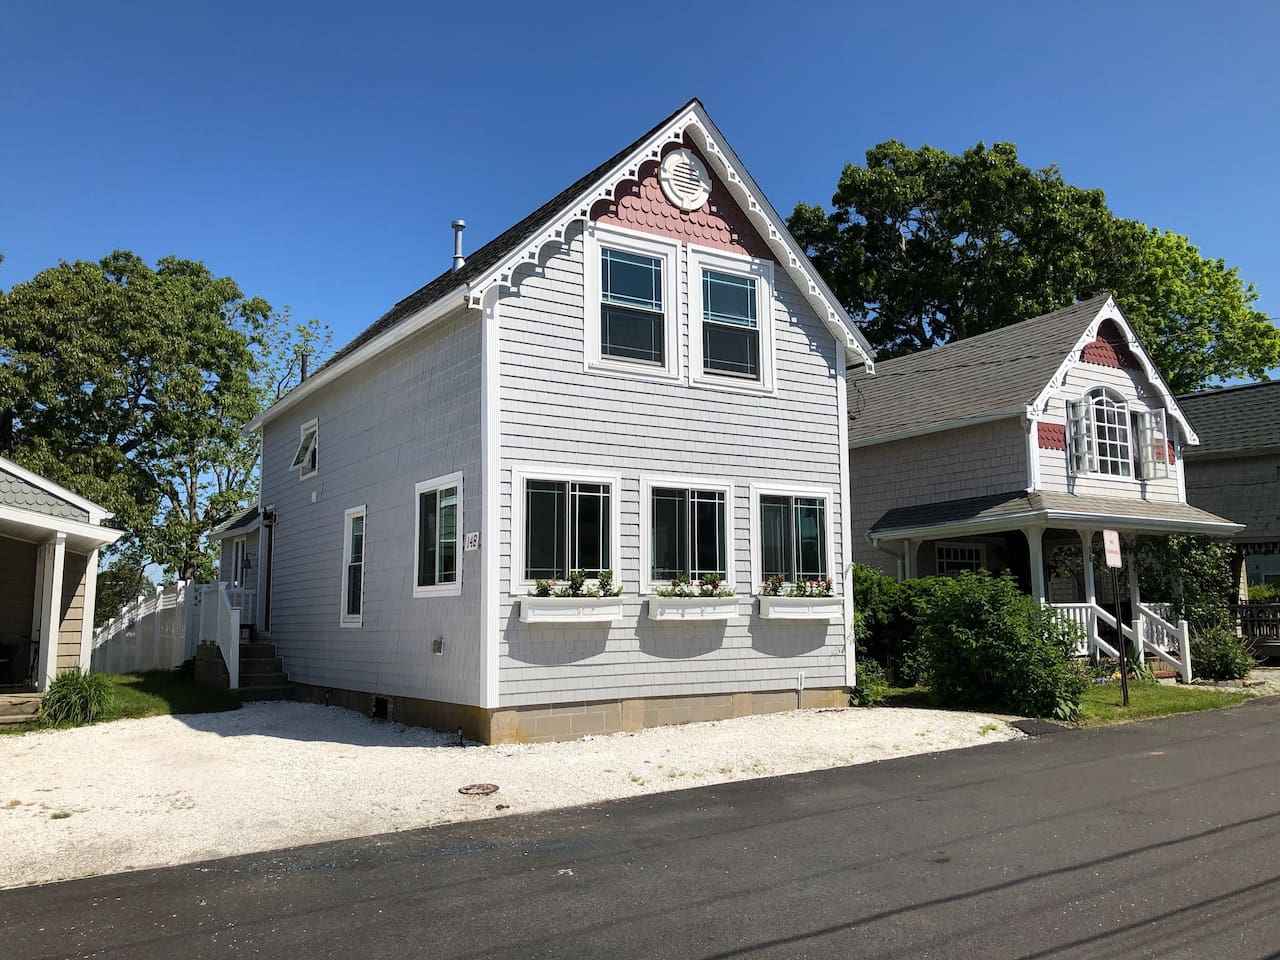 The Summer Wind is located on 14-B Ocean Avenue. Walking distance to everything vacation. Private parking shown at front and side of house.